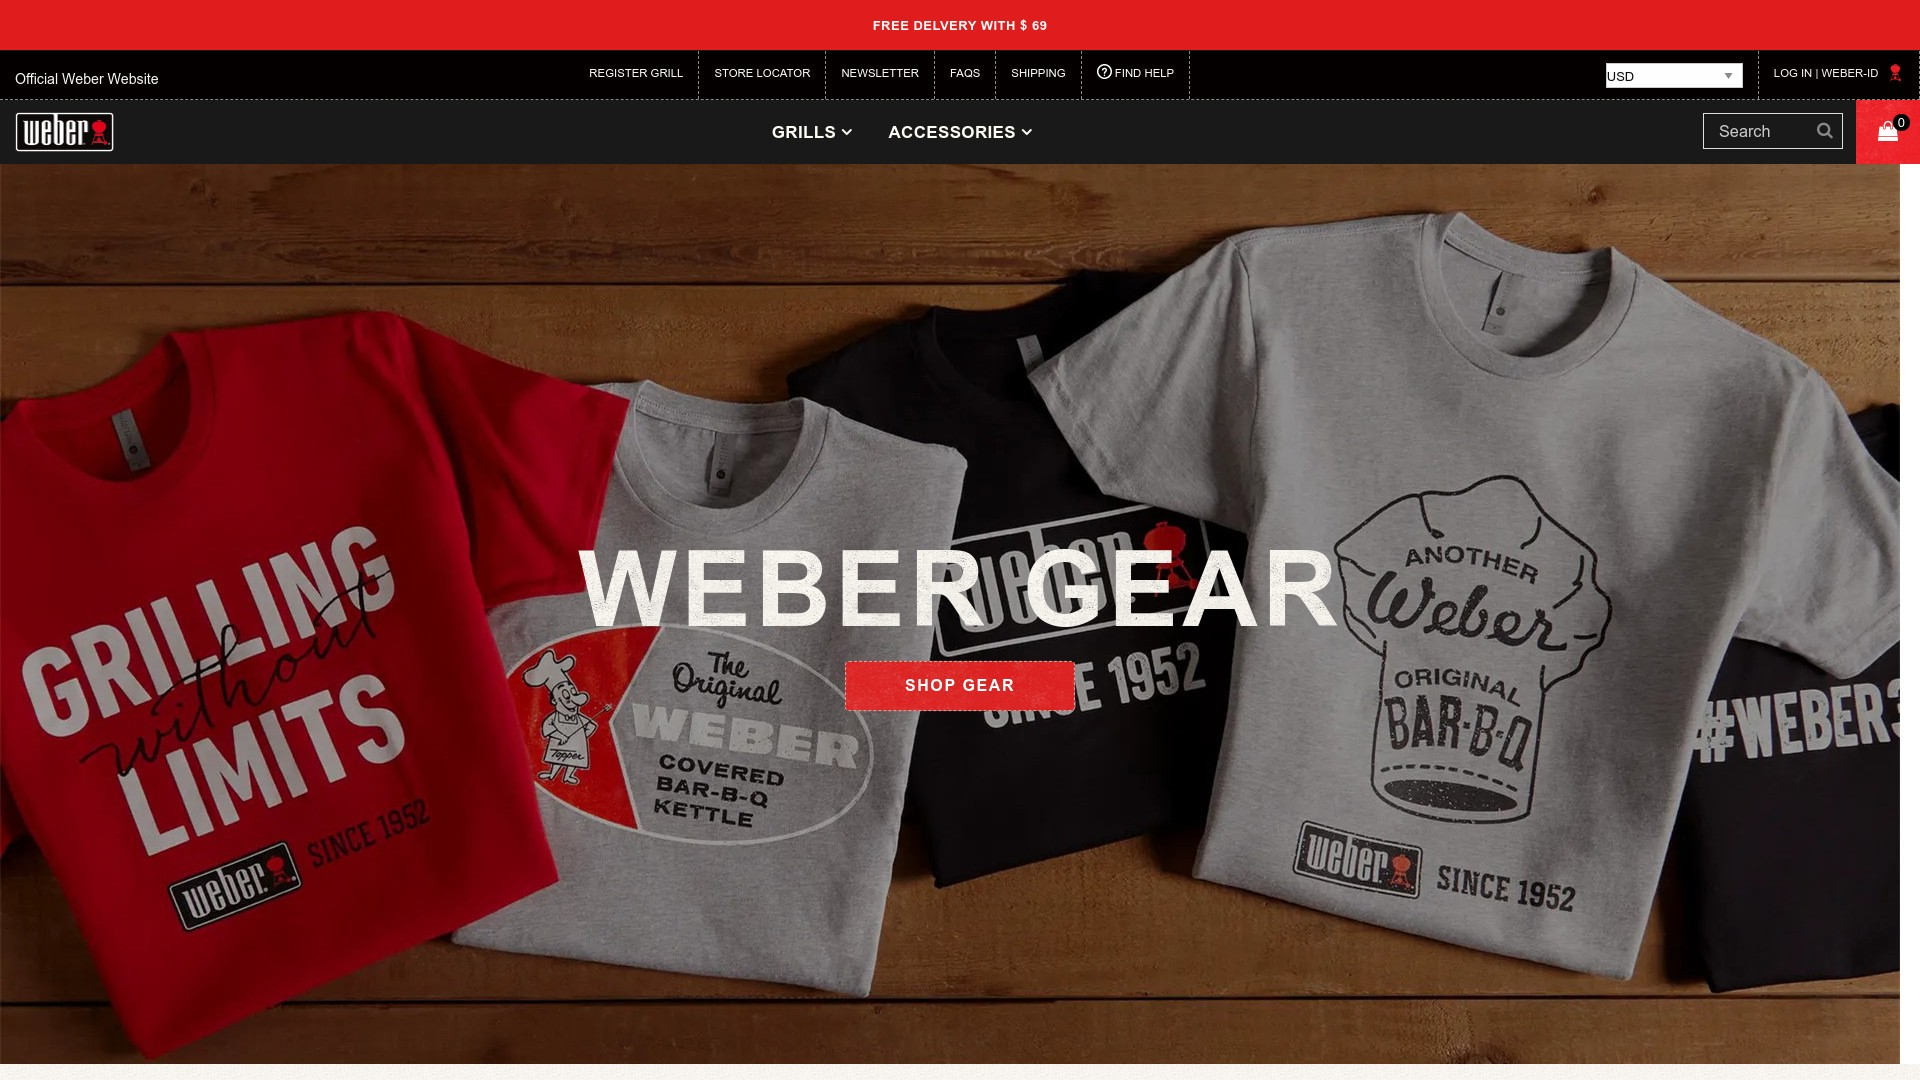 Is Webeves a Scam? See the Review of the Grill Online Store